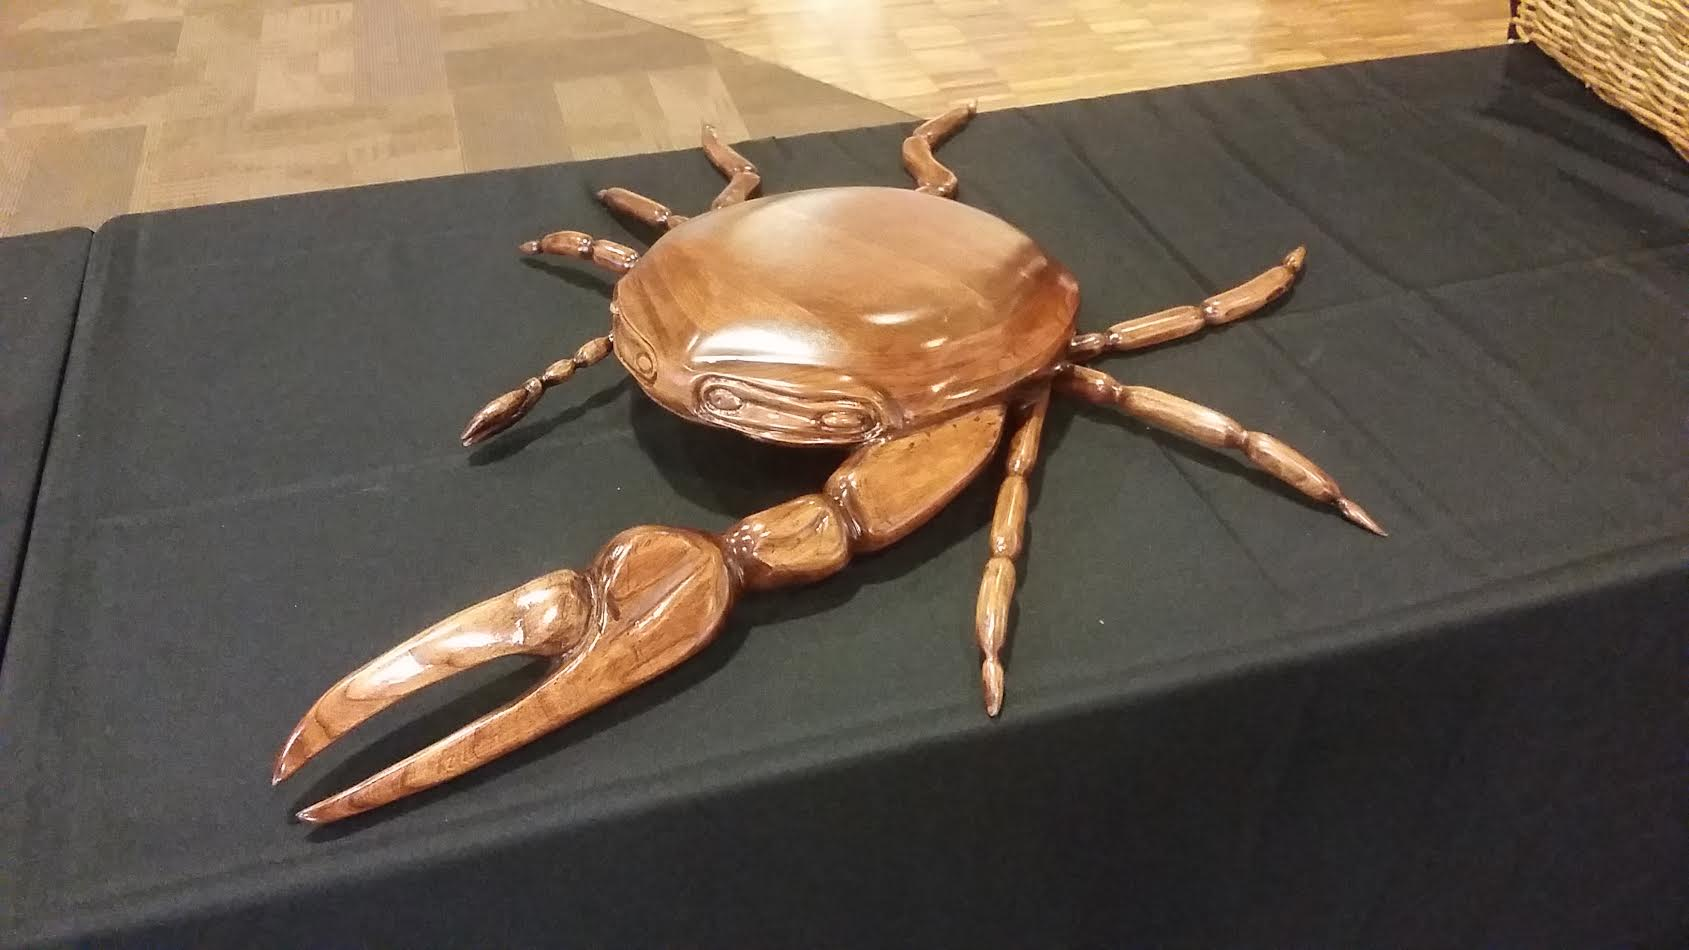 This crab, carved out of salvaged wood by an inmate at Ware State Prison in Waycross, Ga., won first prize at an exhibition of prisoners' at Sloppy Floyd Towers that was judged this week by Governor Nathan Deal.